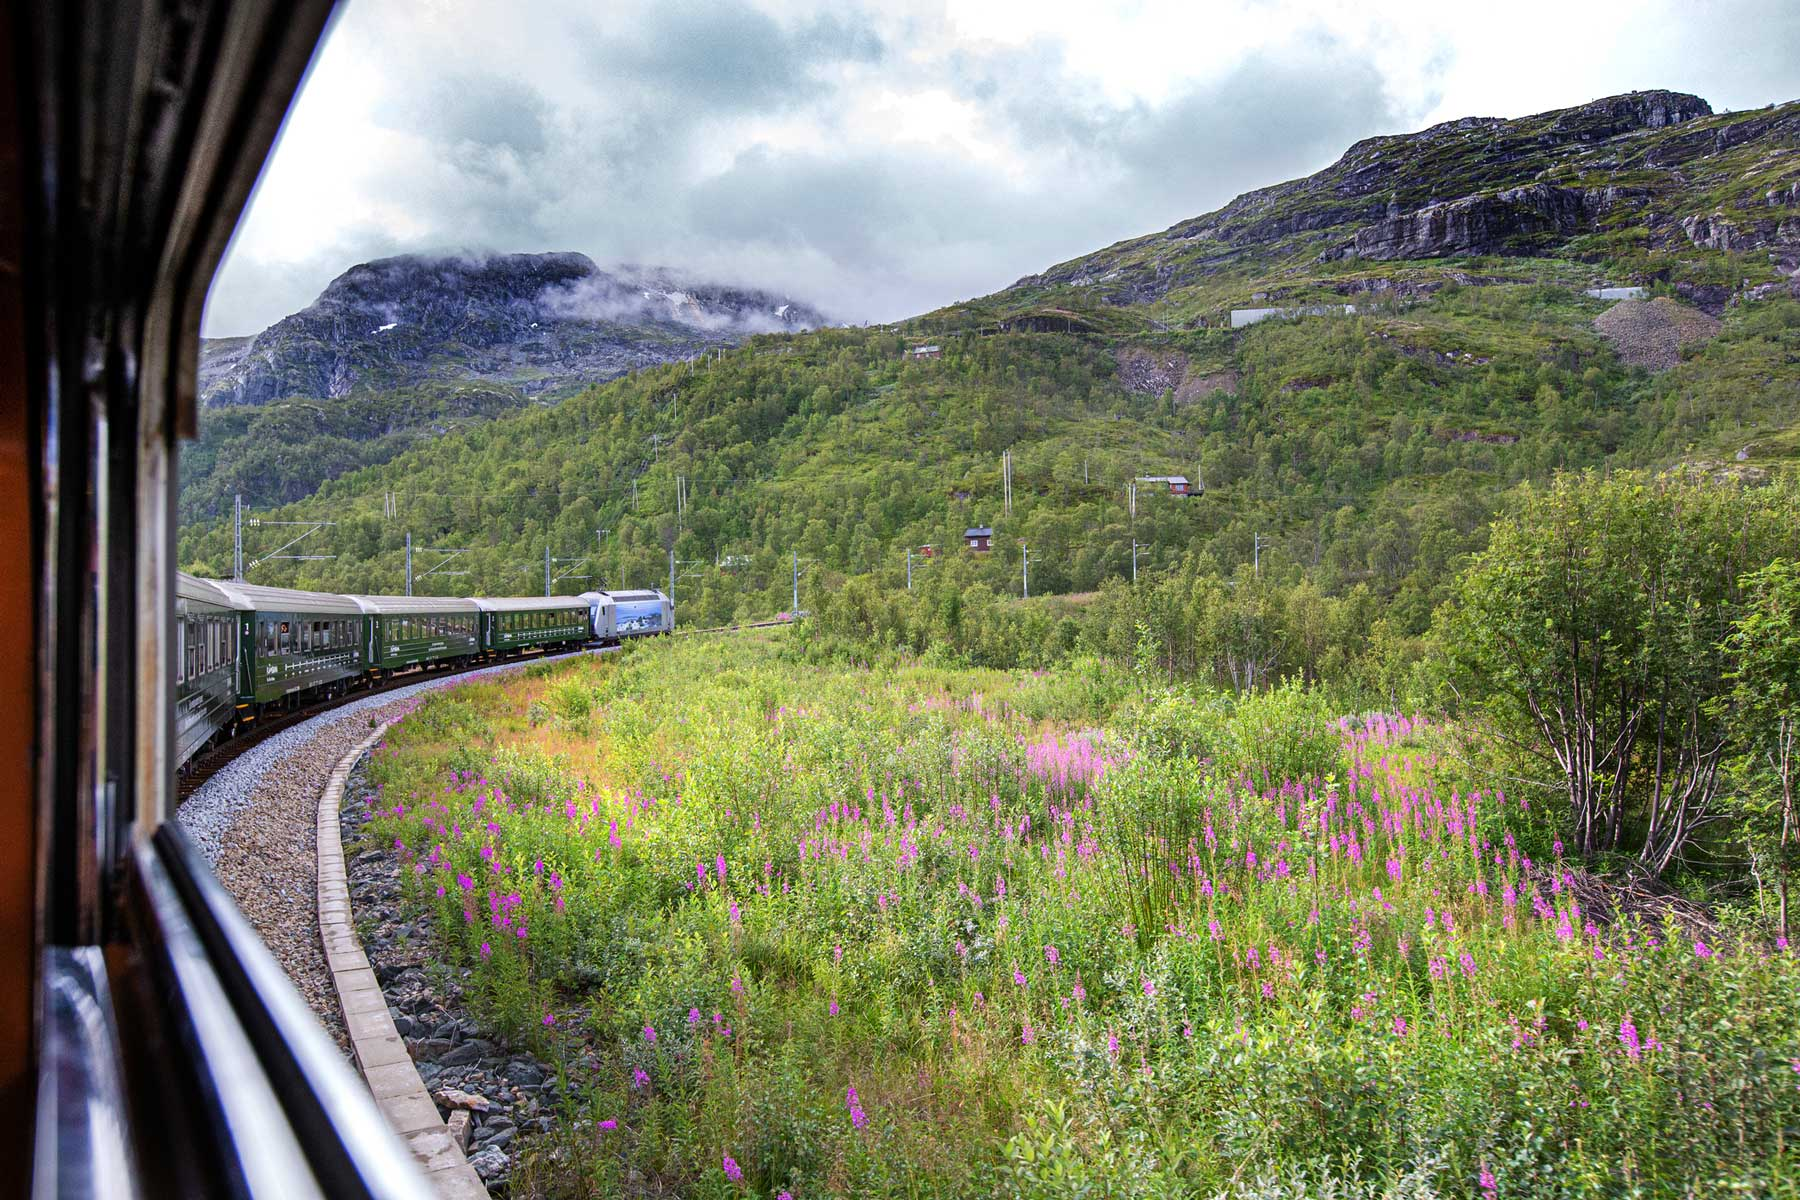 Spectacular view from the famous Norwegian Flåm train speeding uphill on its way to Myrdal station. Said to be one of the most beautiful railway journeys on the planet.